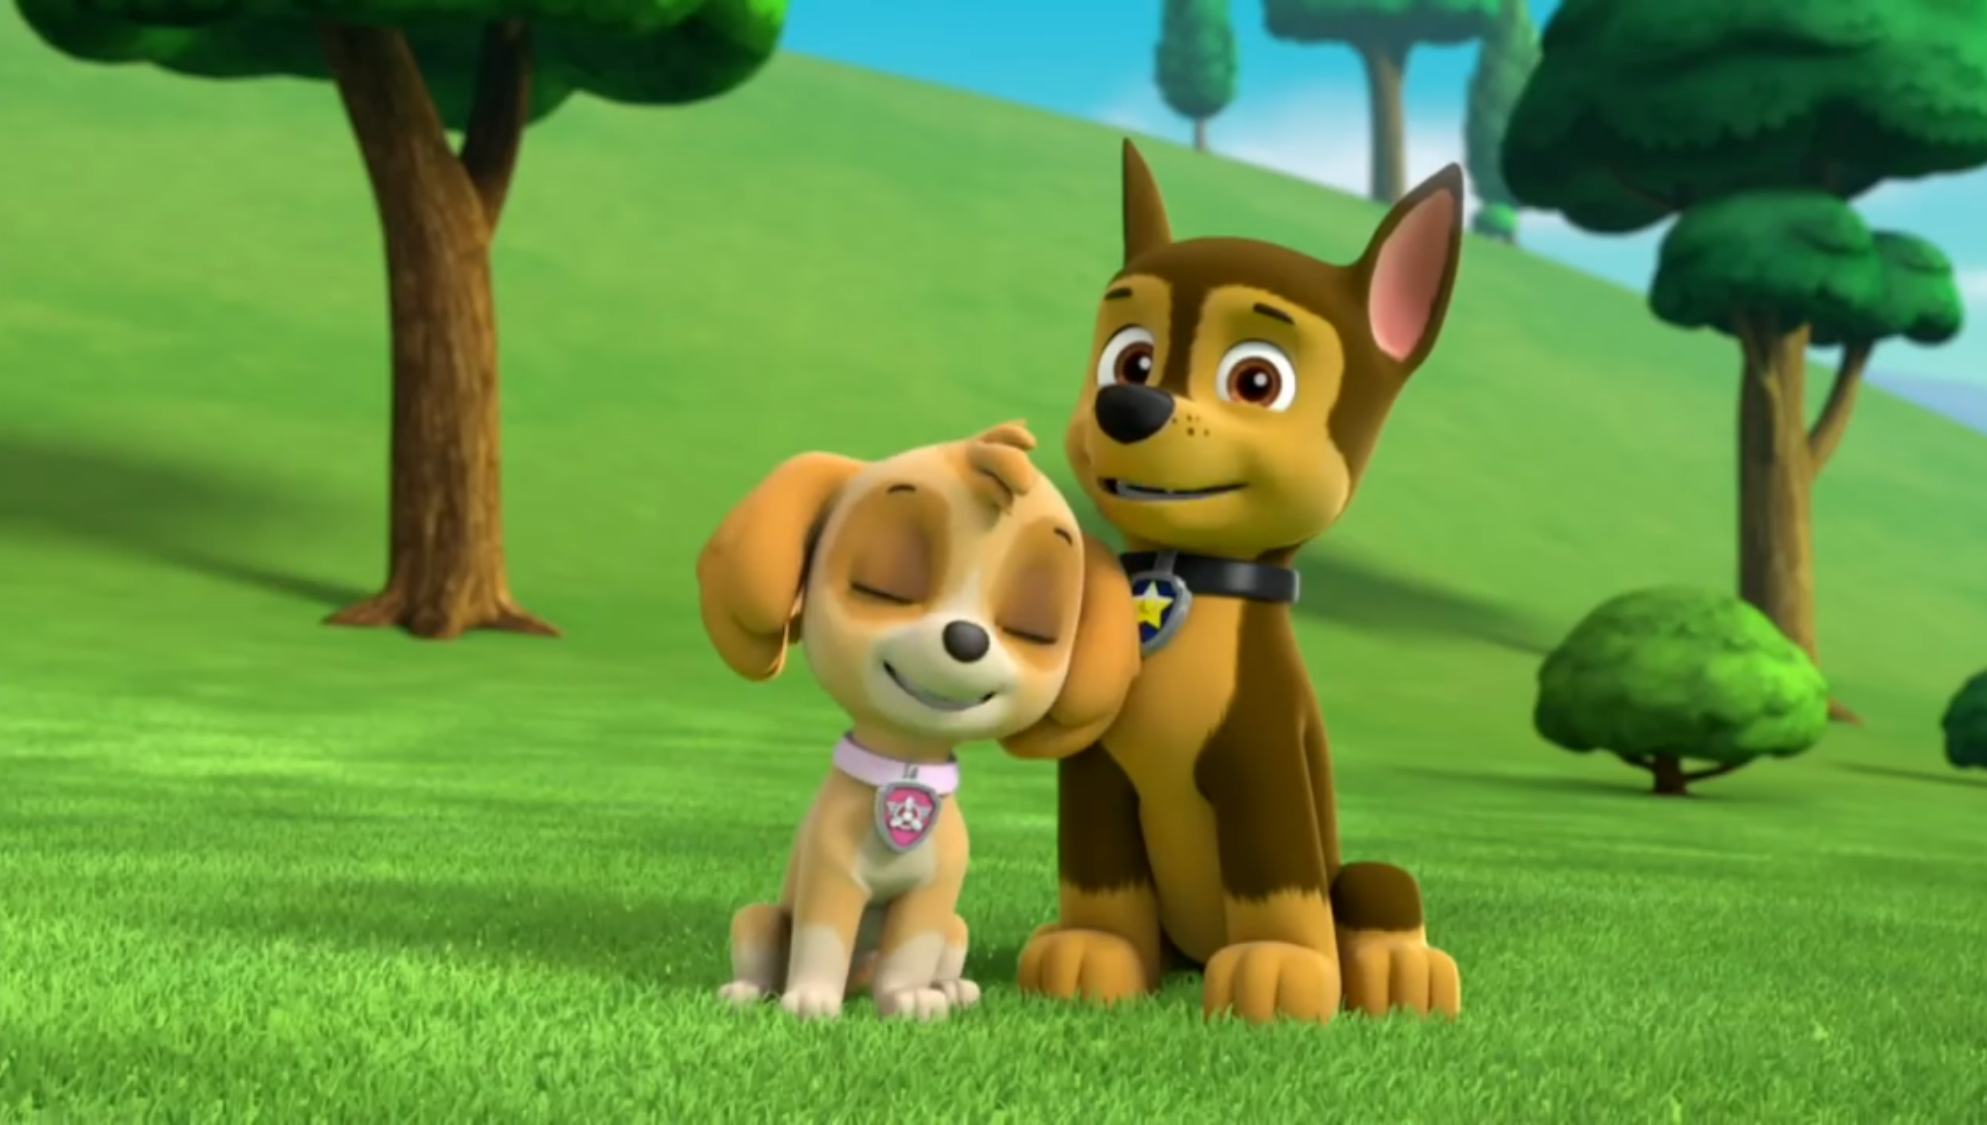 Chase X Skye | Paw Patrol Relation Ship Wiki | FANDOM powered by Wikia